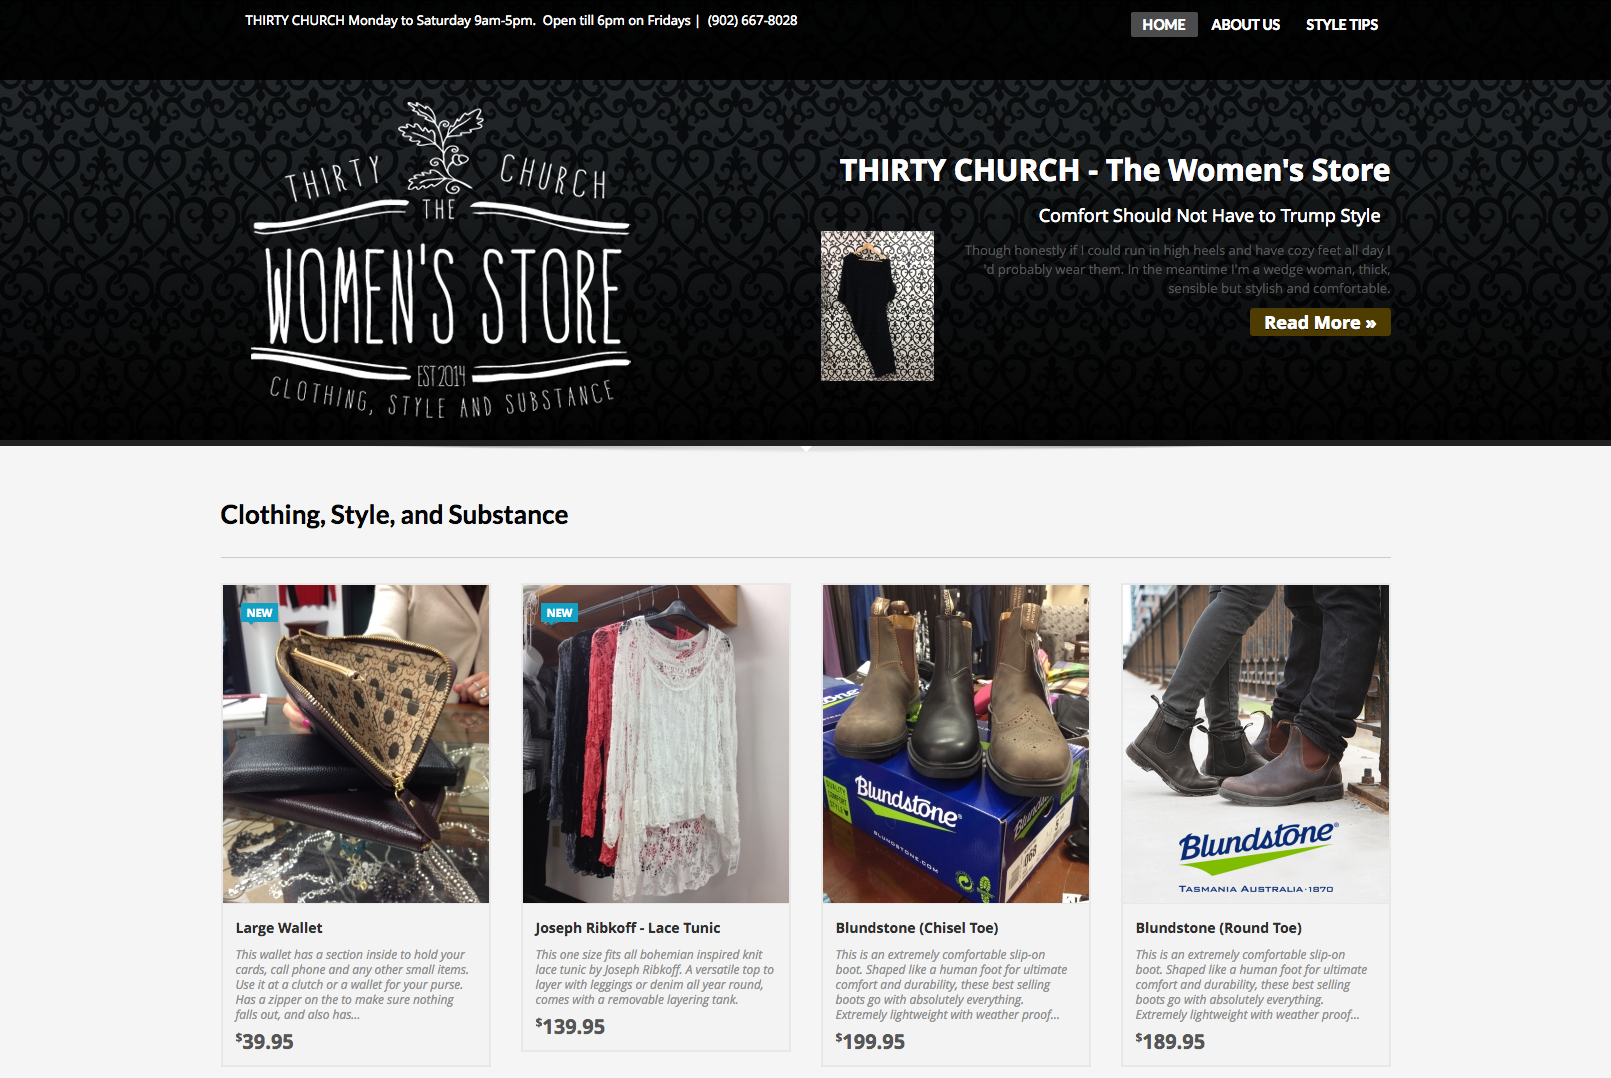 Thirty Church - The Women's Store